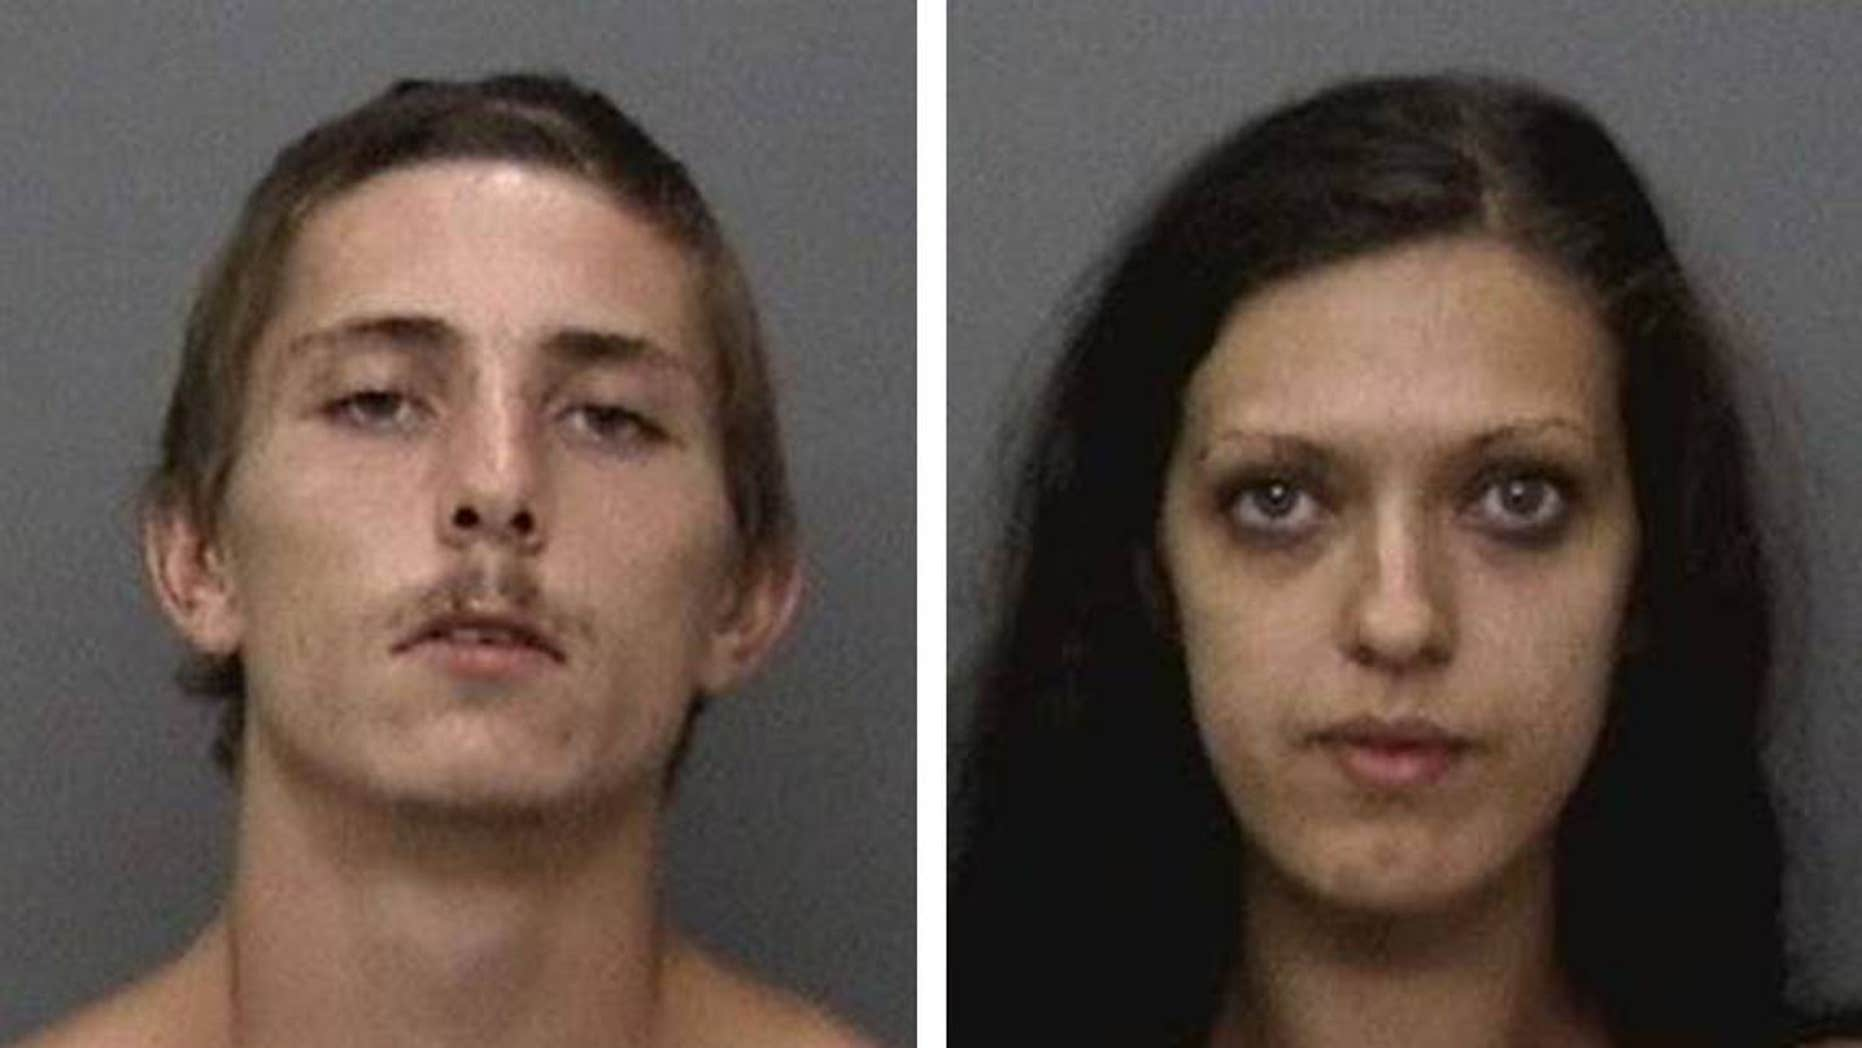 Jack Fannin and Jade Ball were arrested Sunday on suspicion of looting homes that had been evacuated earlier due to a wildfire, police said.